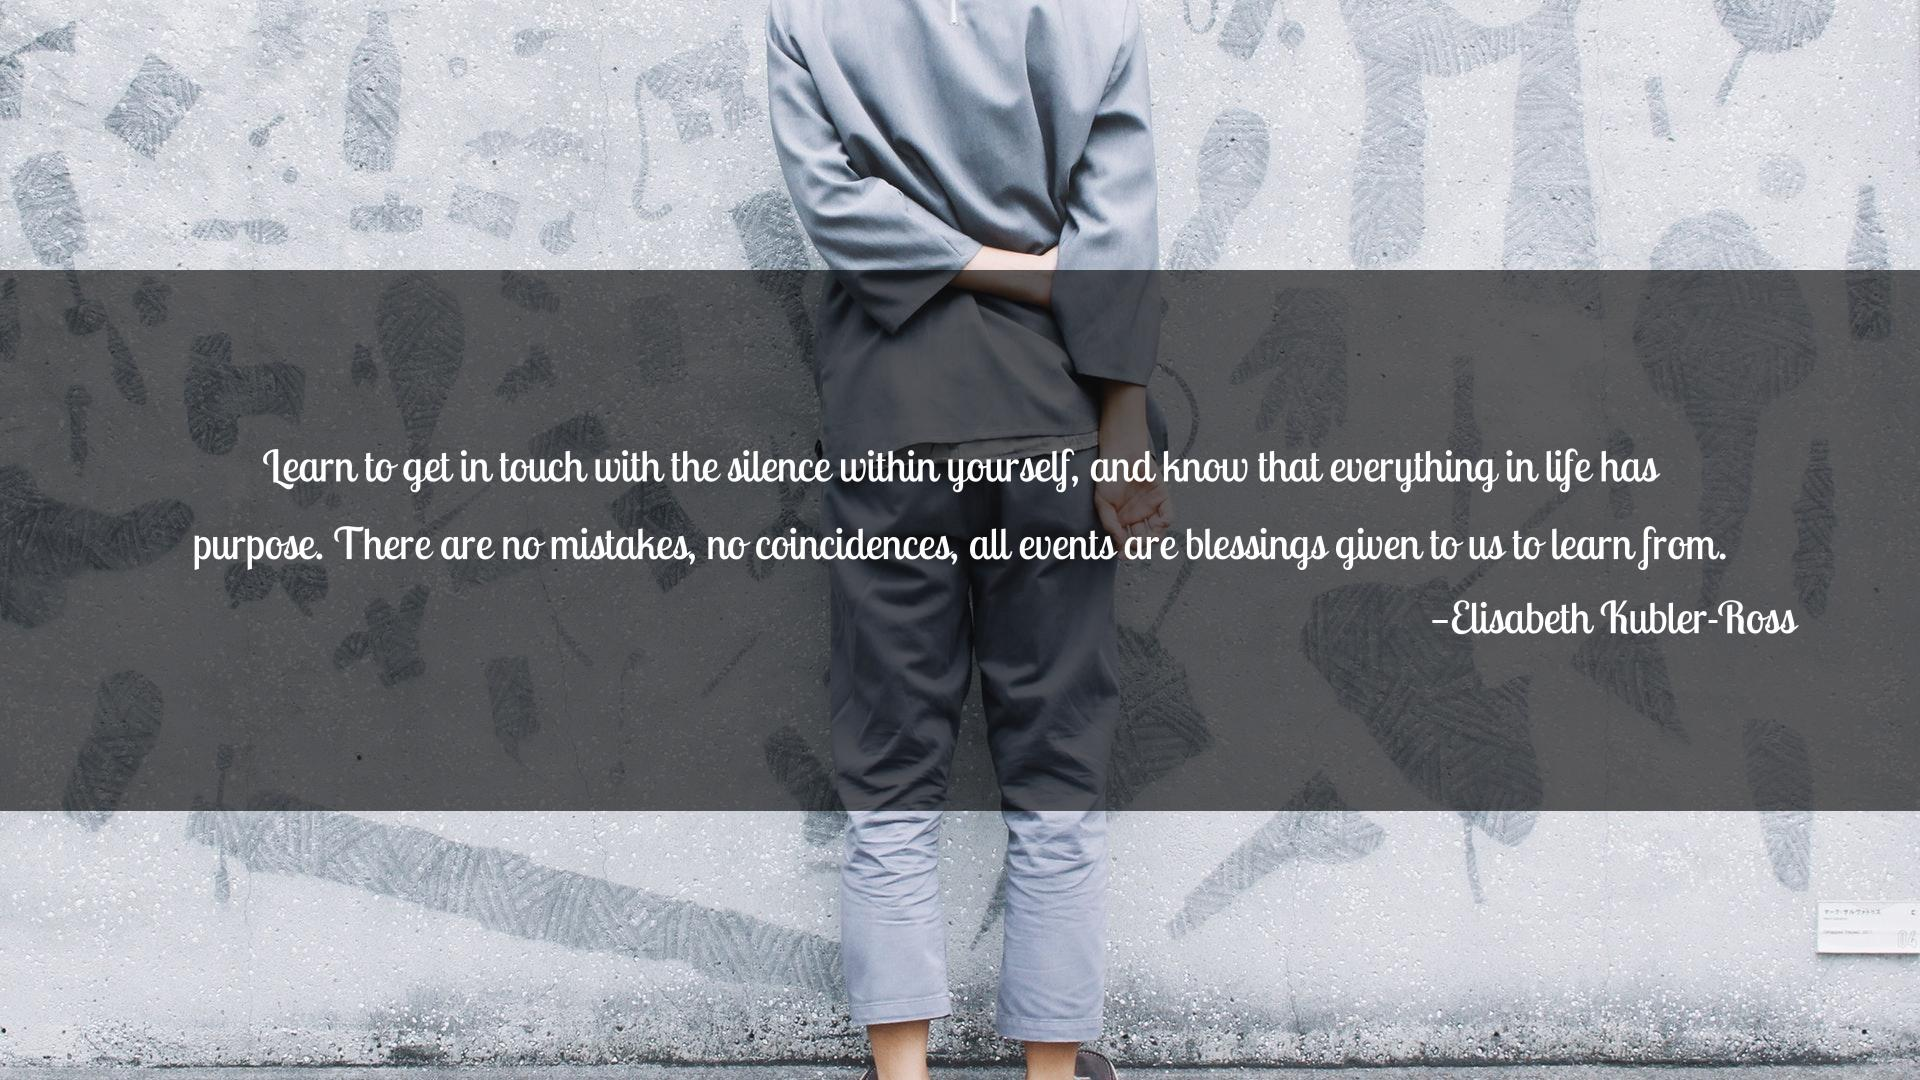 A quote by Elisabeth Kubler-Ross